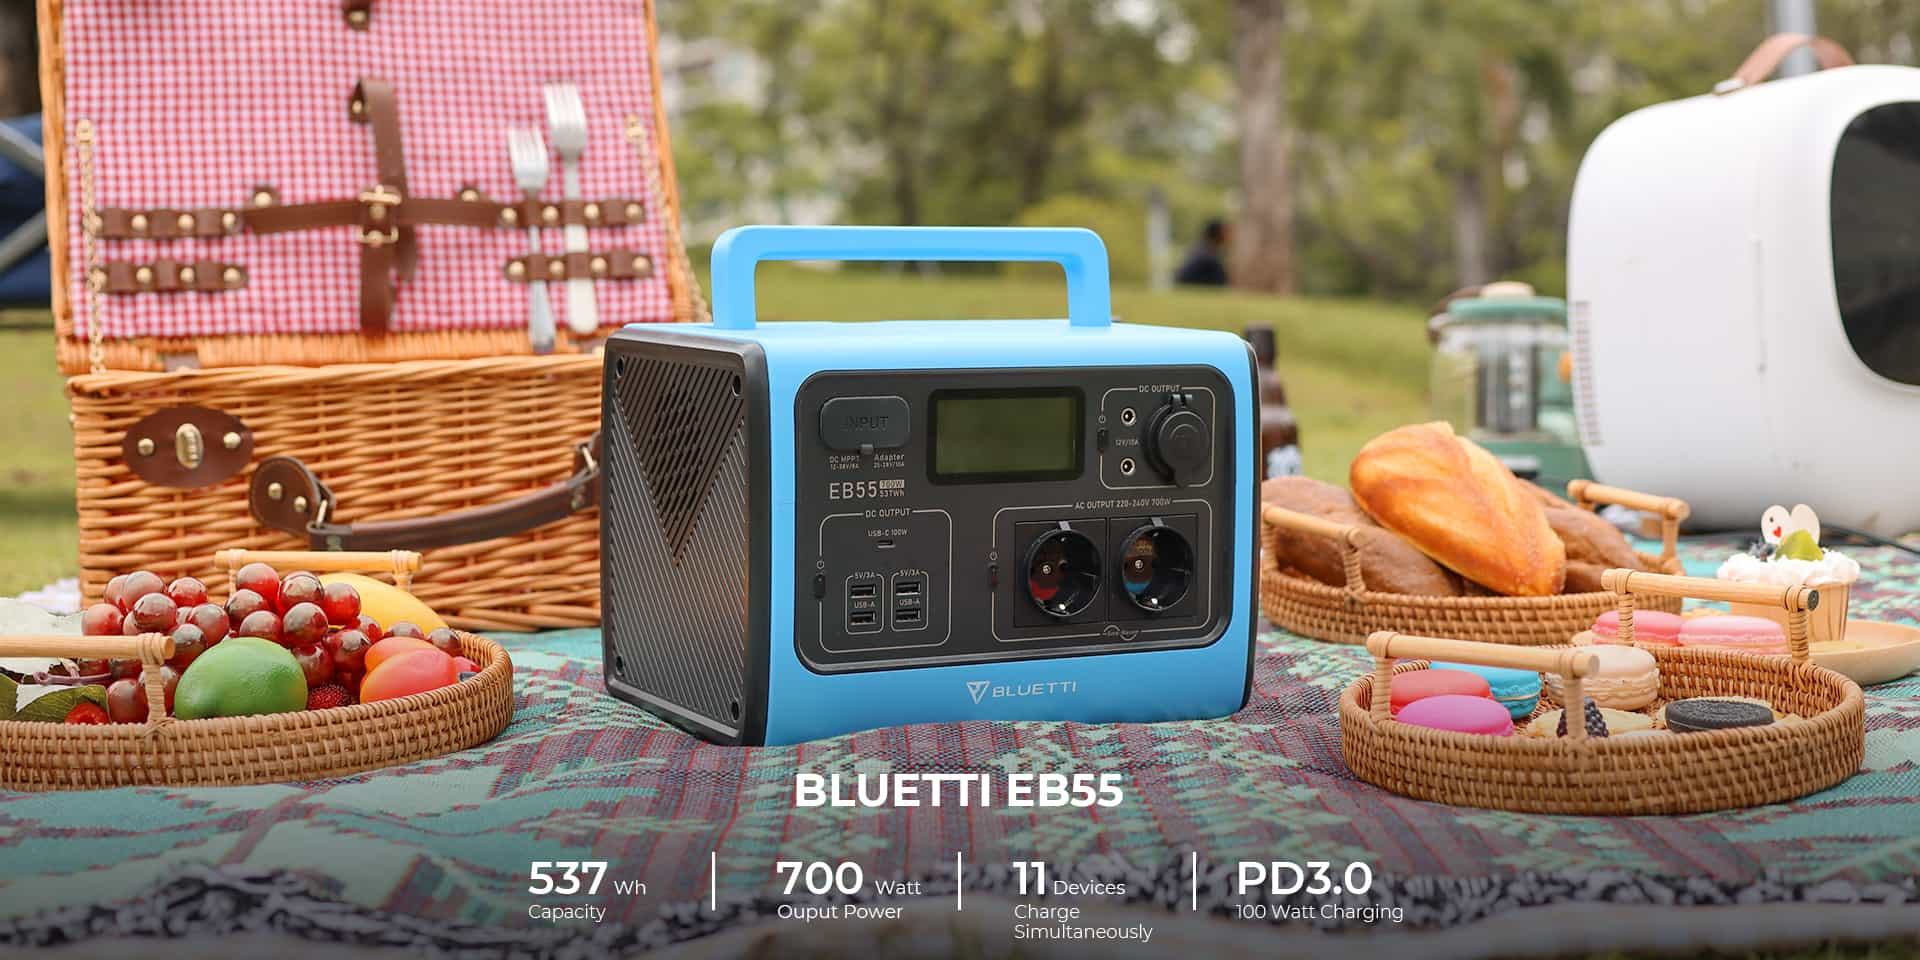 Bluetti_EB55_Power_Station_main_features